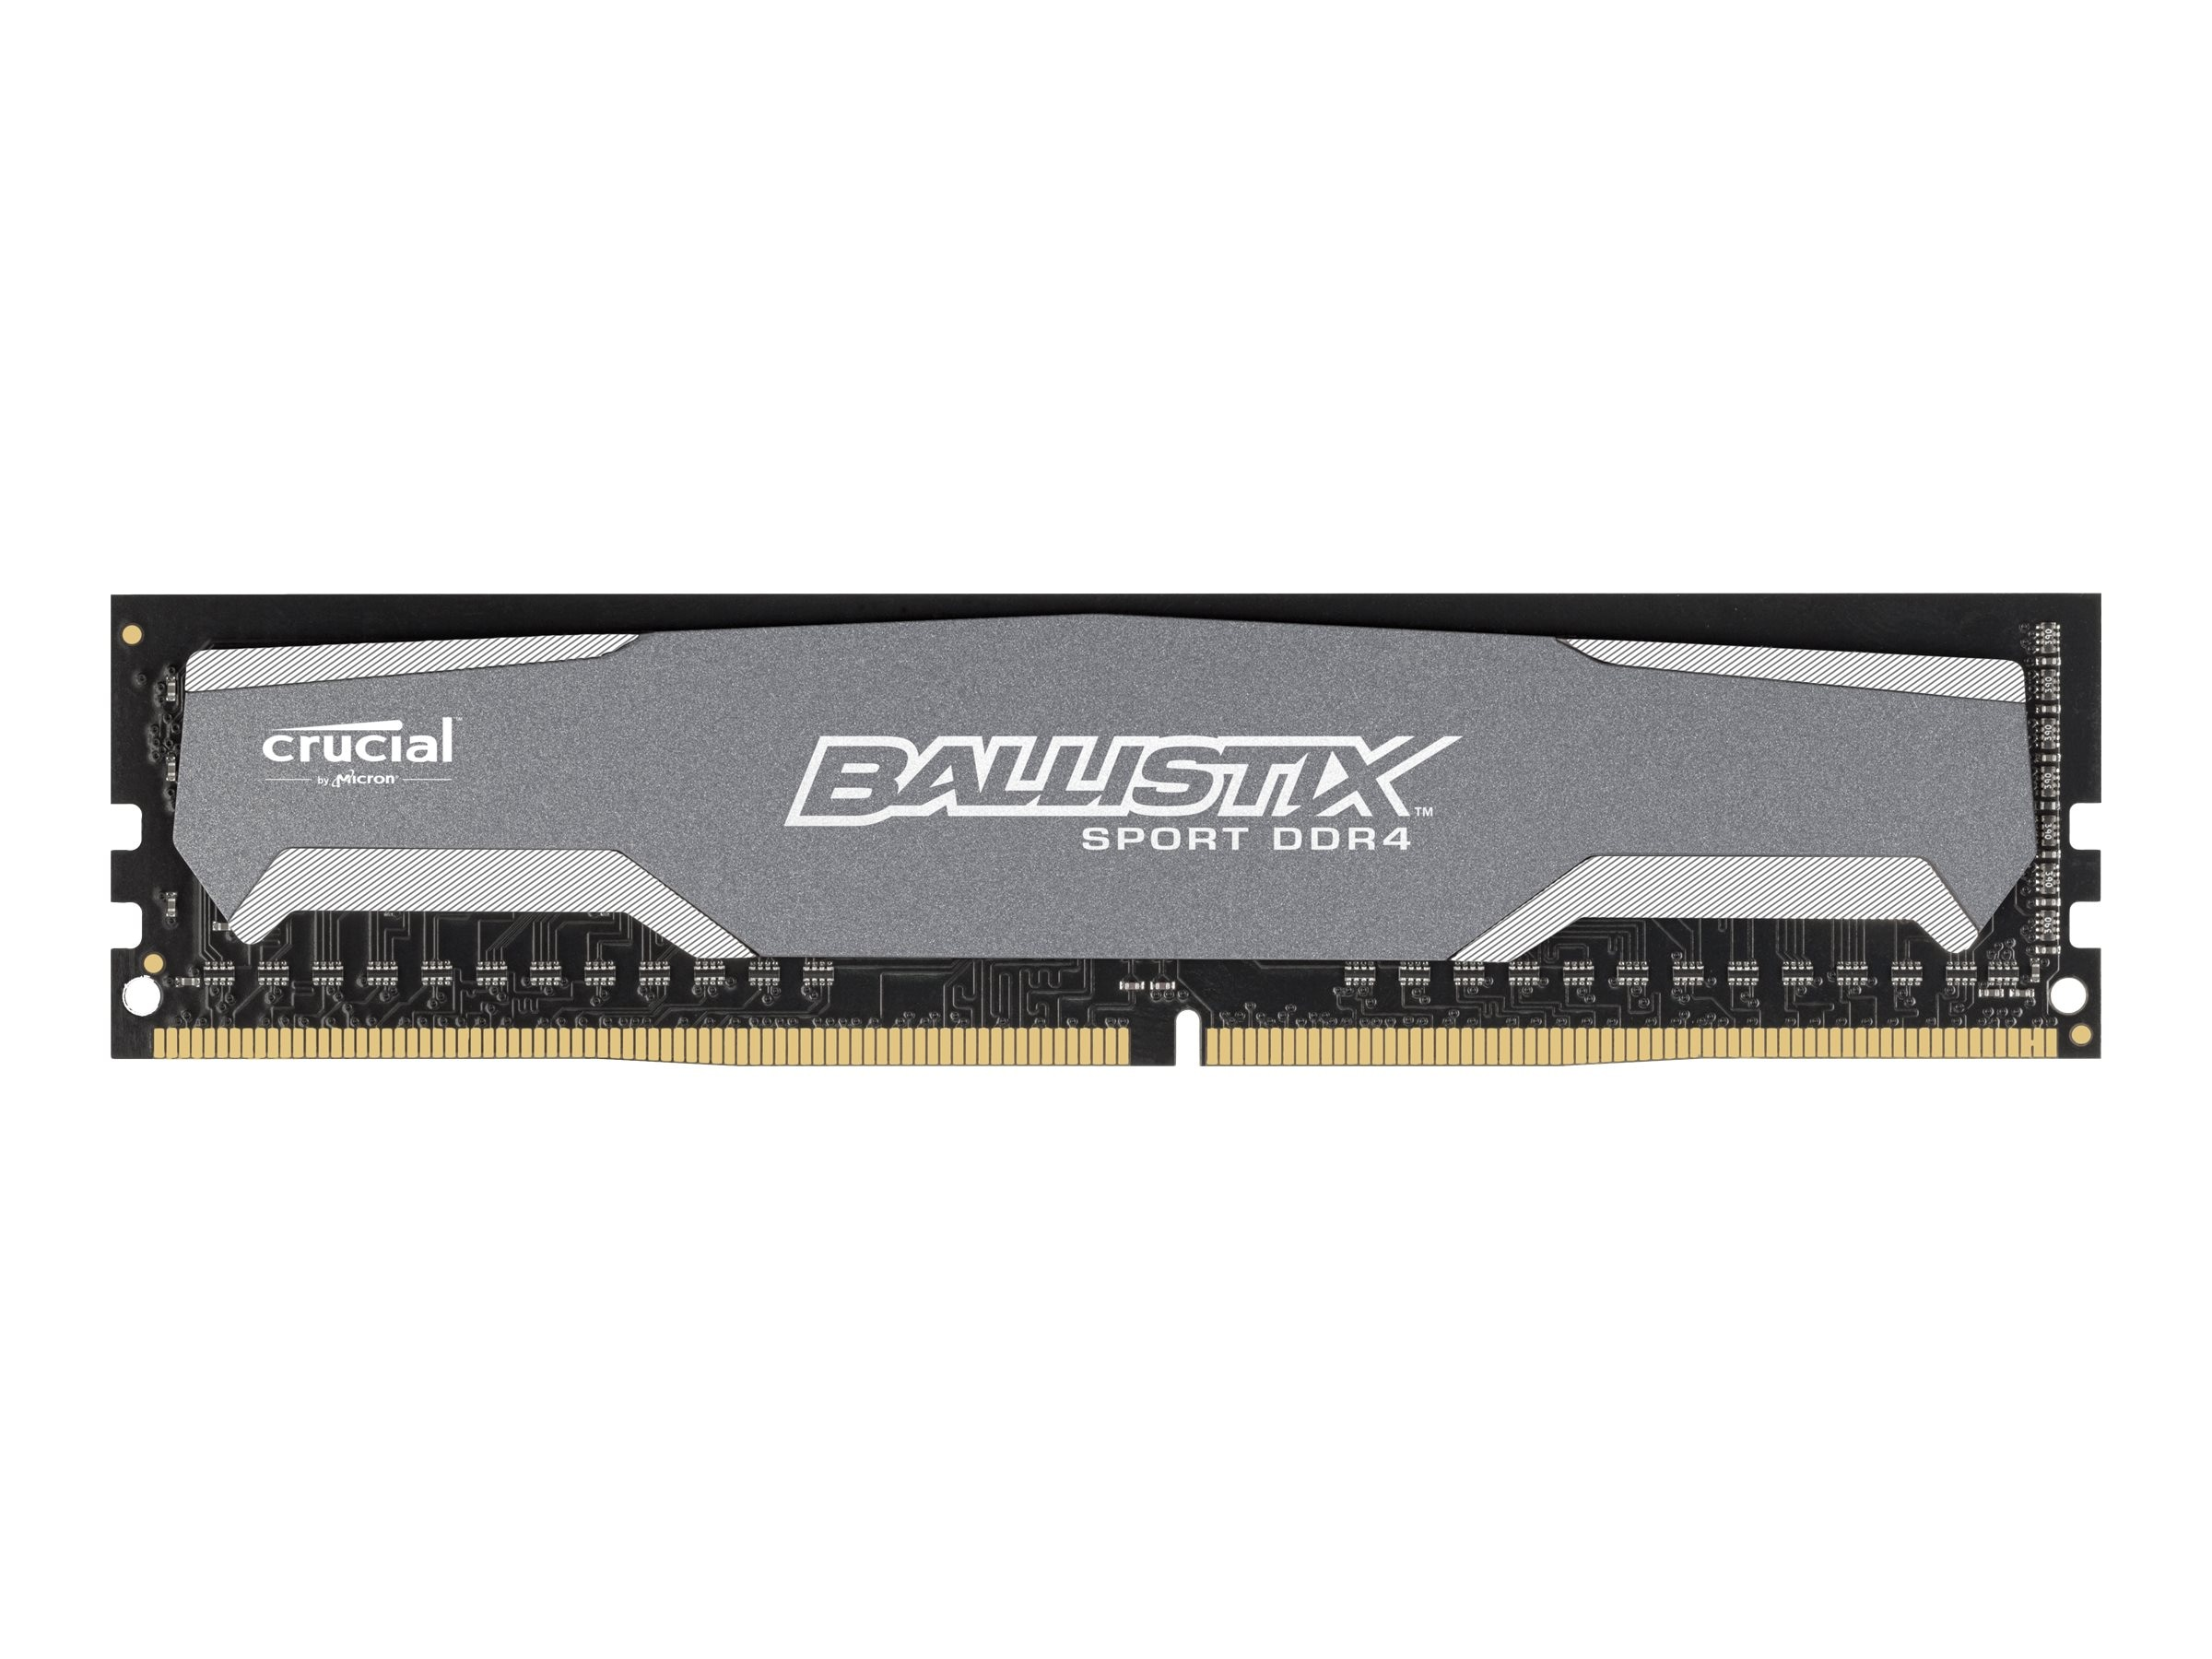 Crucial 4GB PC4-19200 288-pin DDR4 SDRAM UDIMM